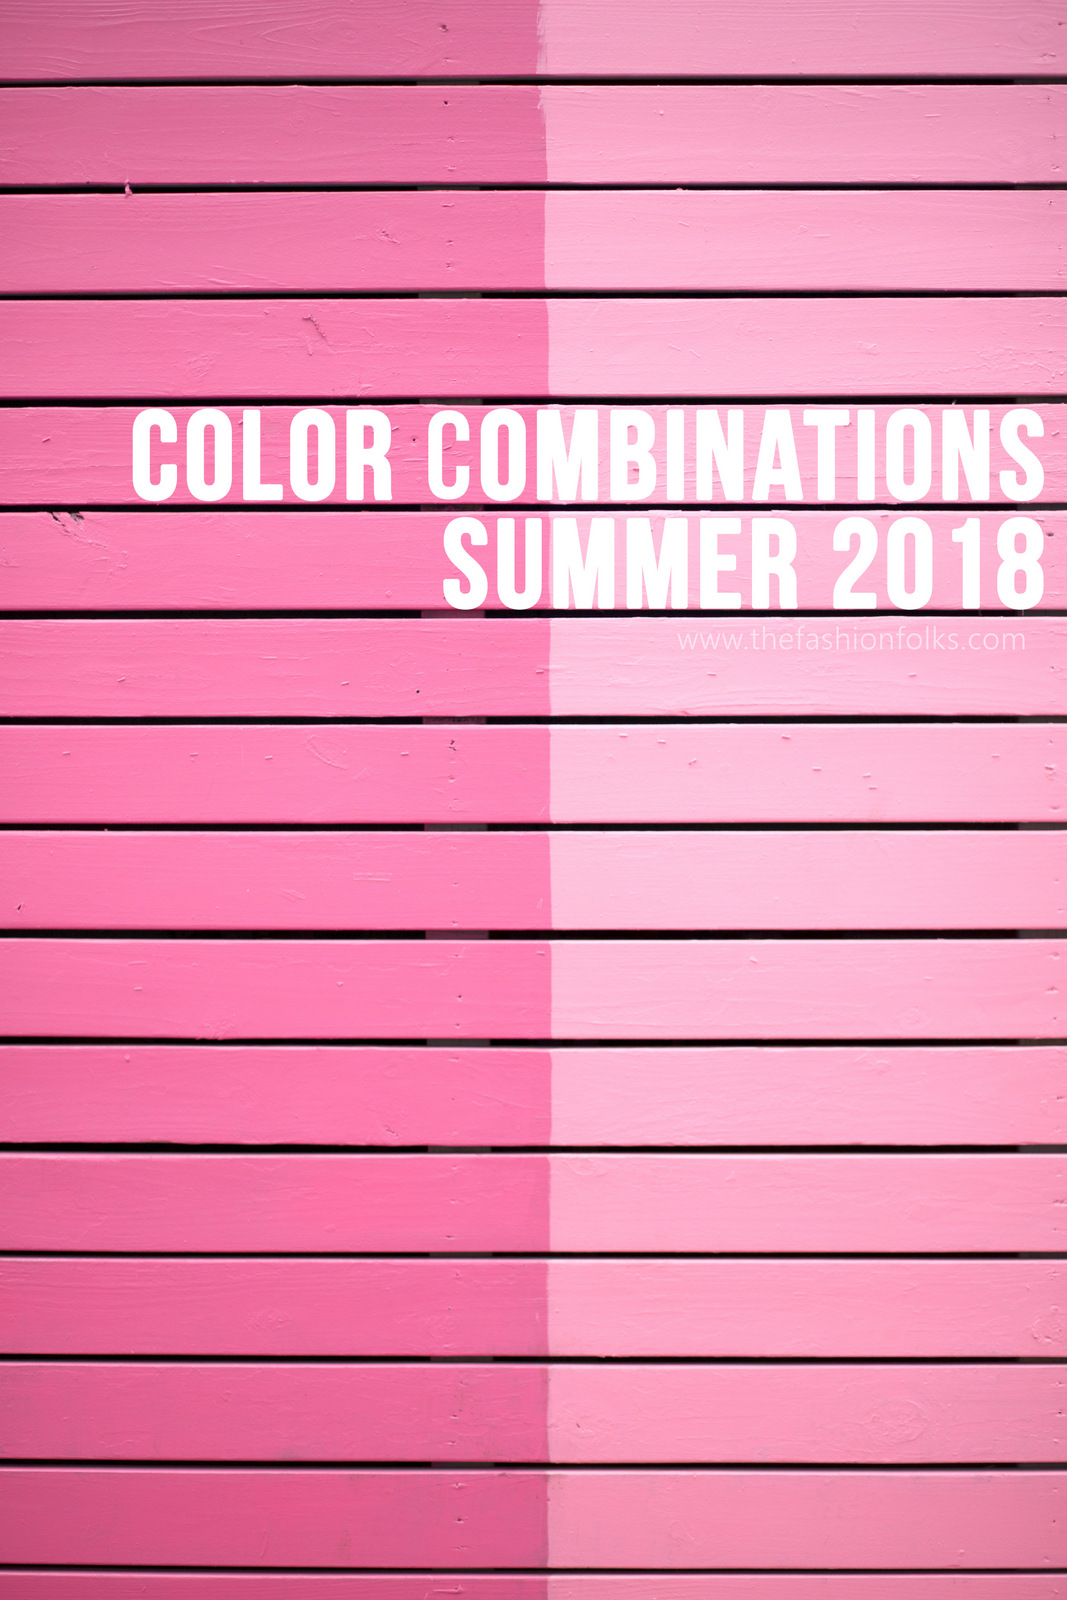 Color Combinations Summer 2018